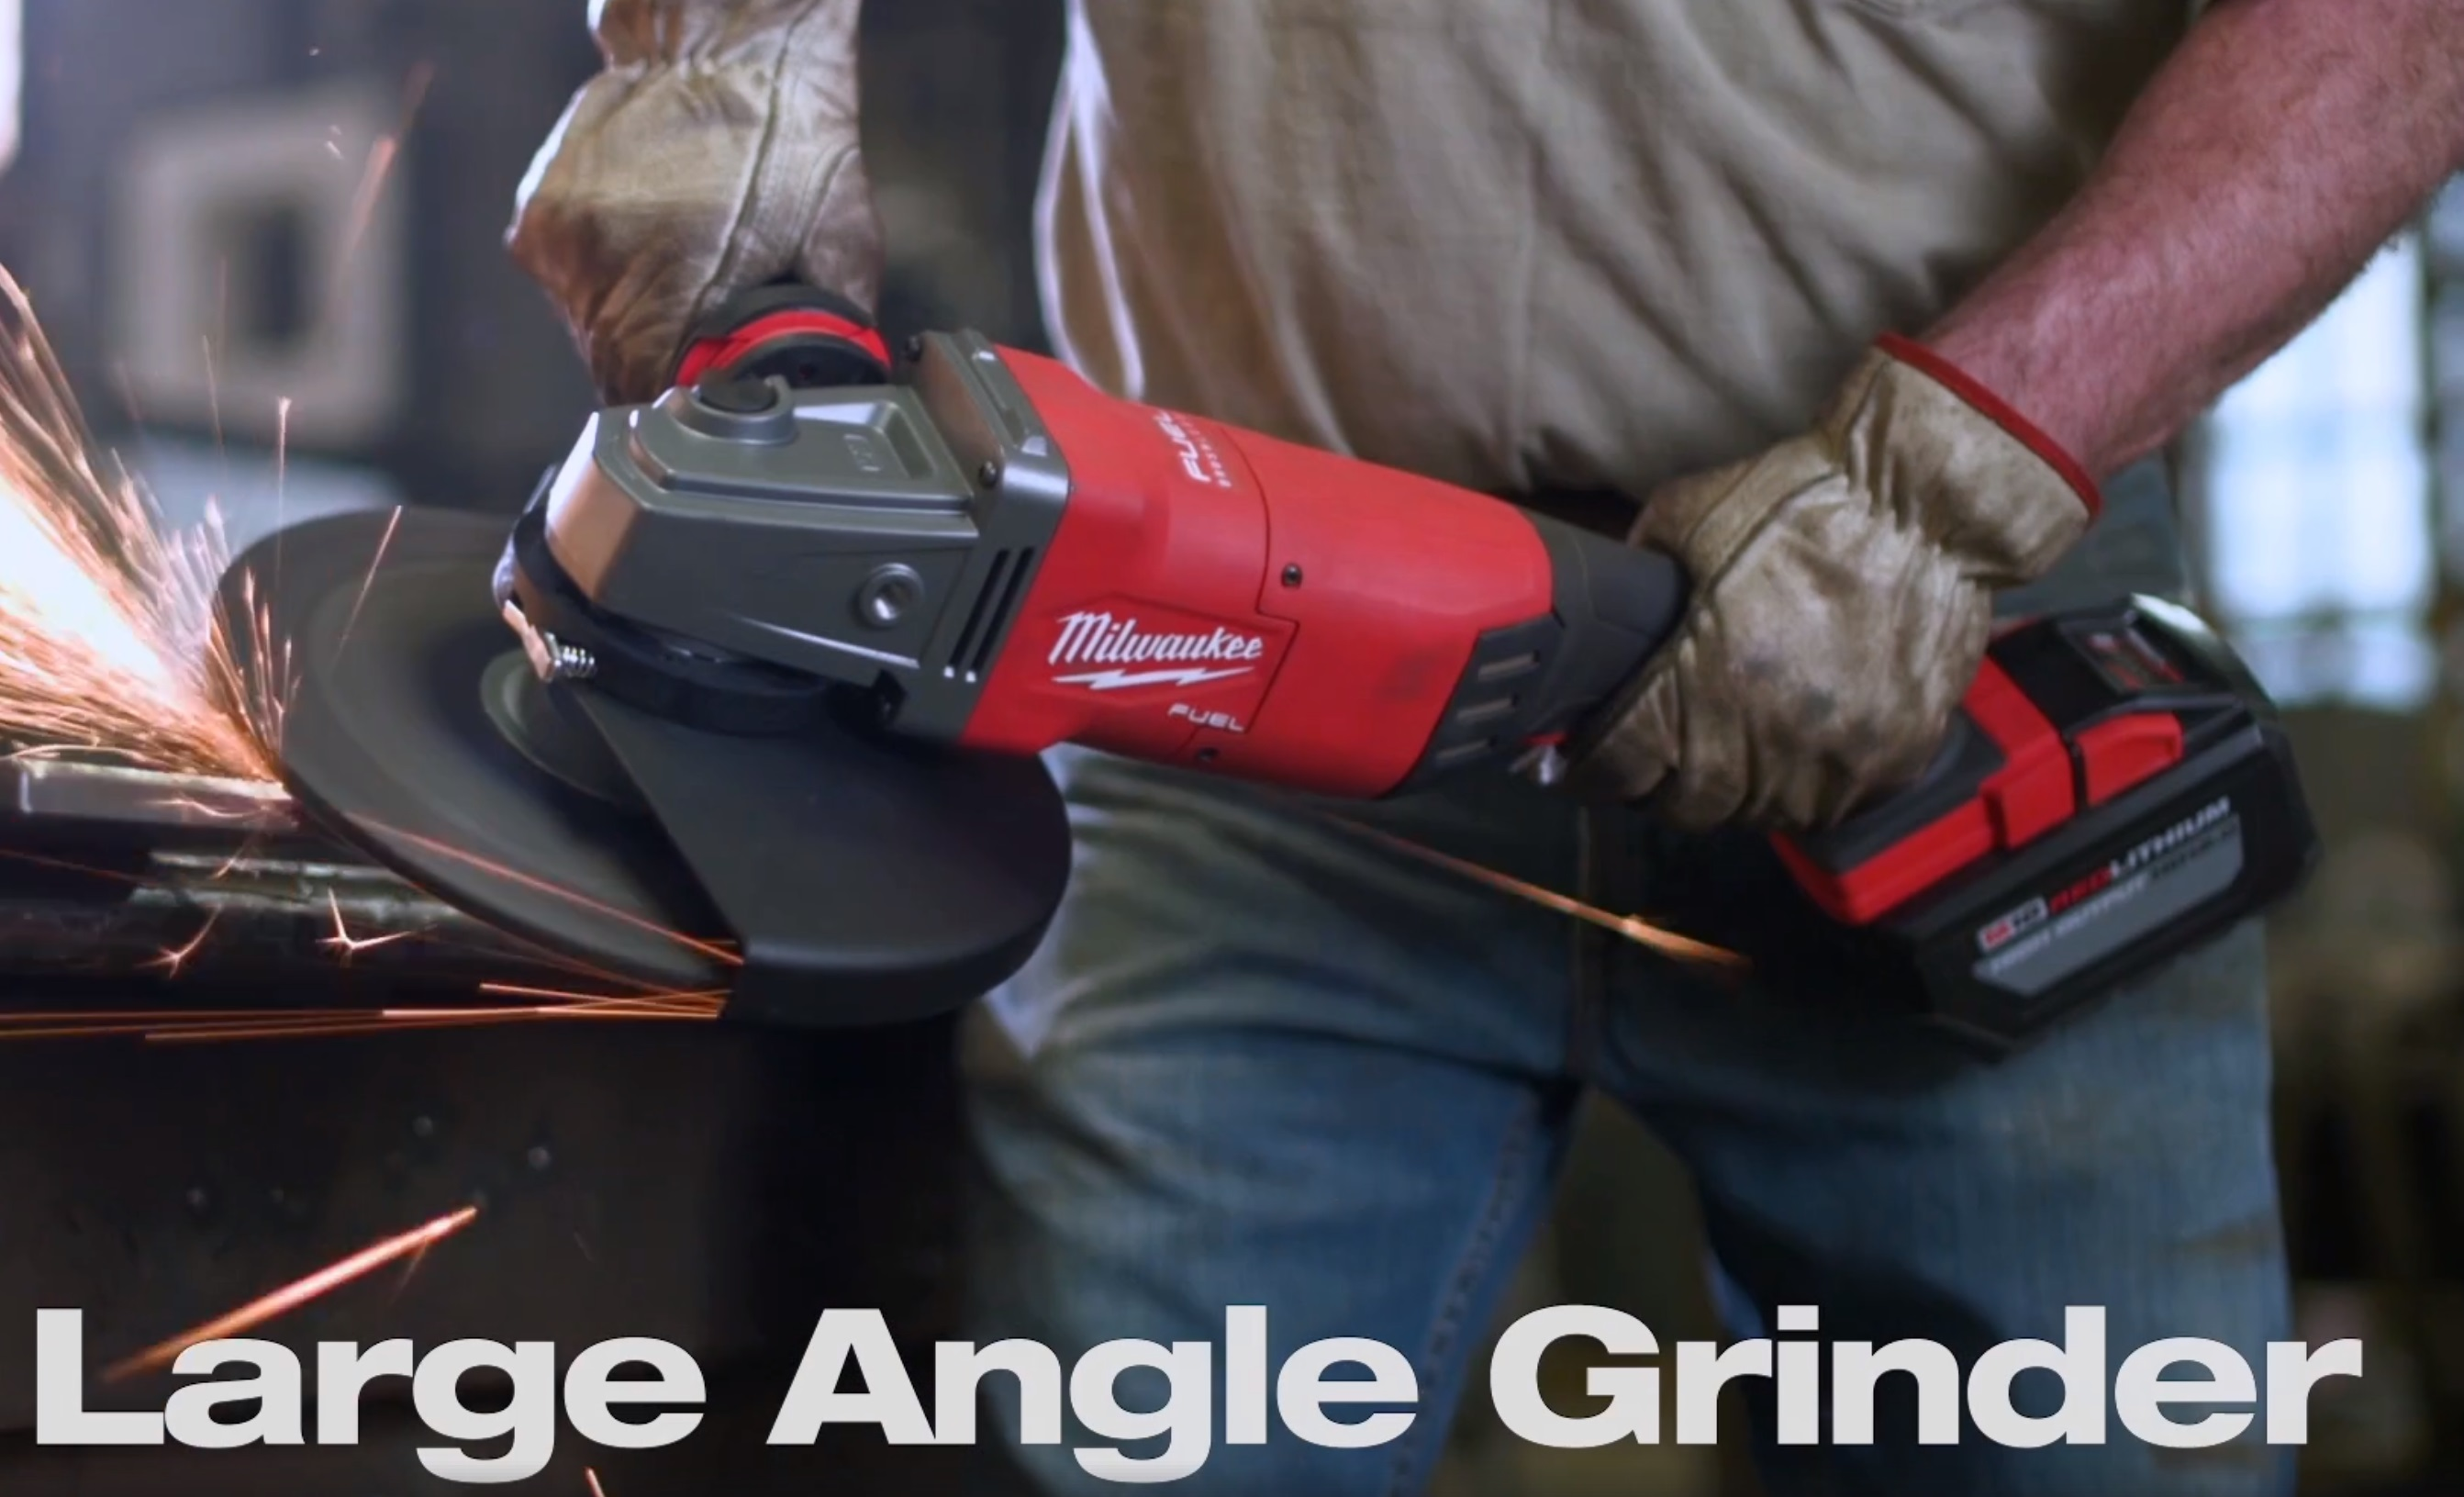 Cordless 4 1 2 Inch Grinders Have Been Around For Several Years And Just In The Past Year Tool Brands Coming Out With Large 9 Angle